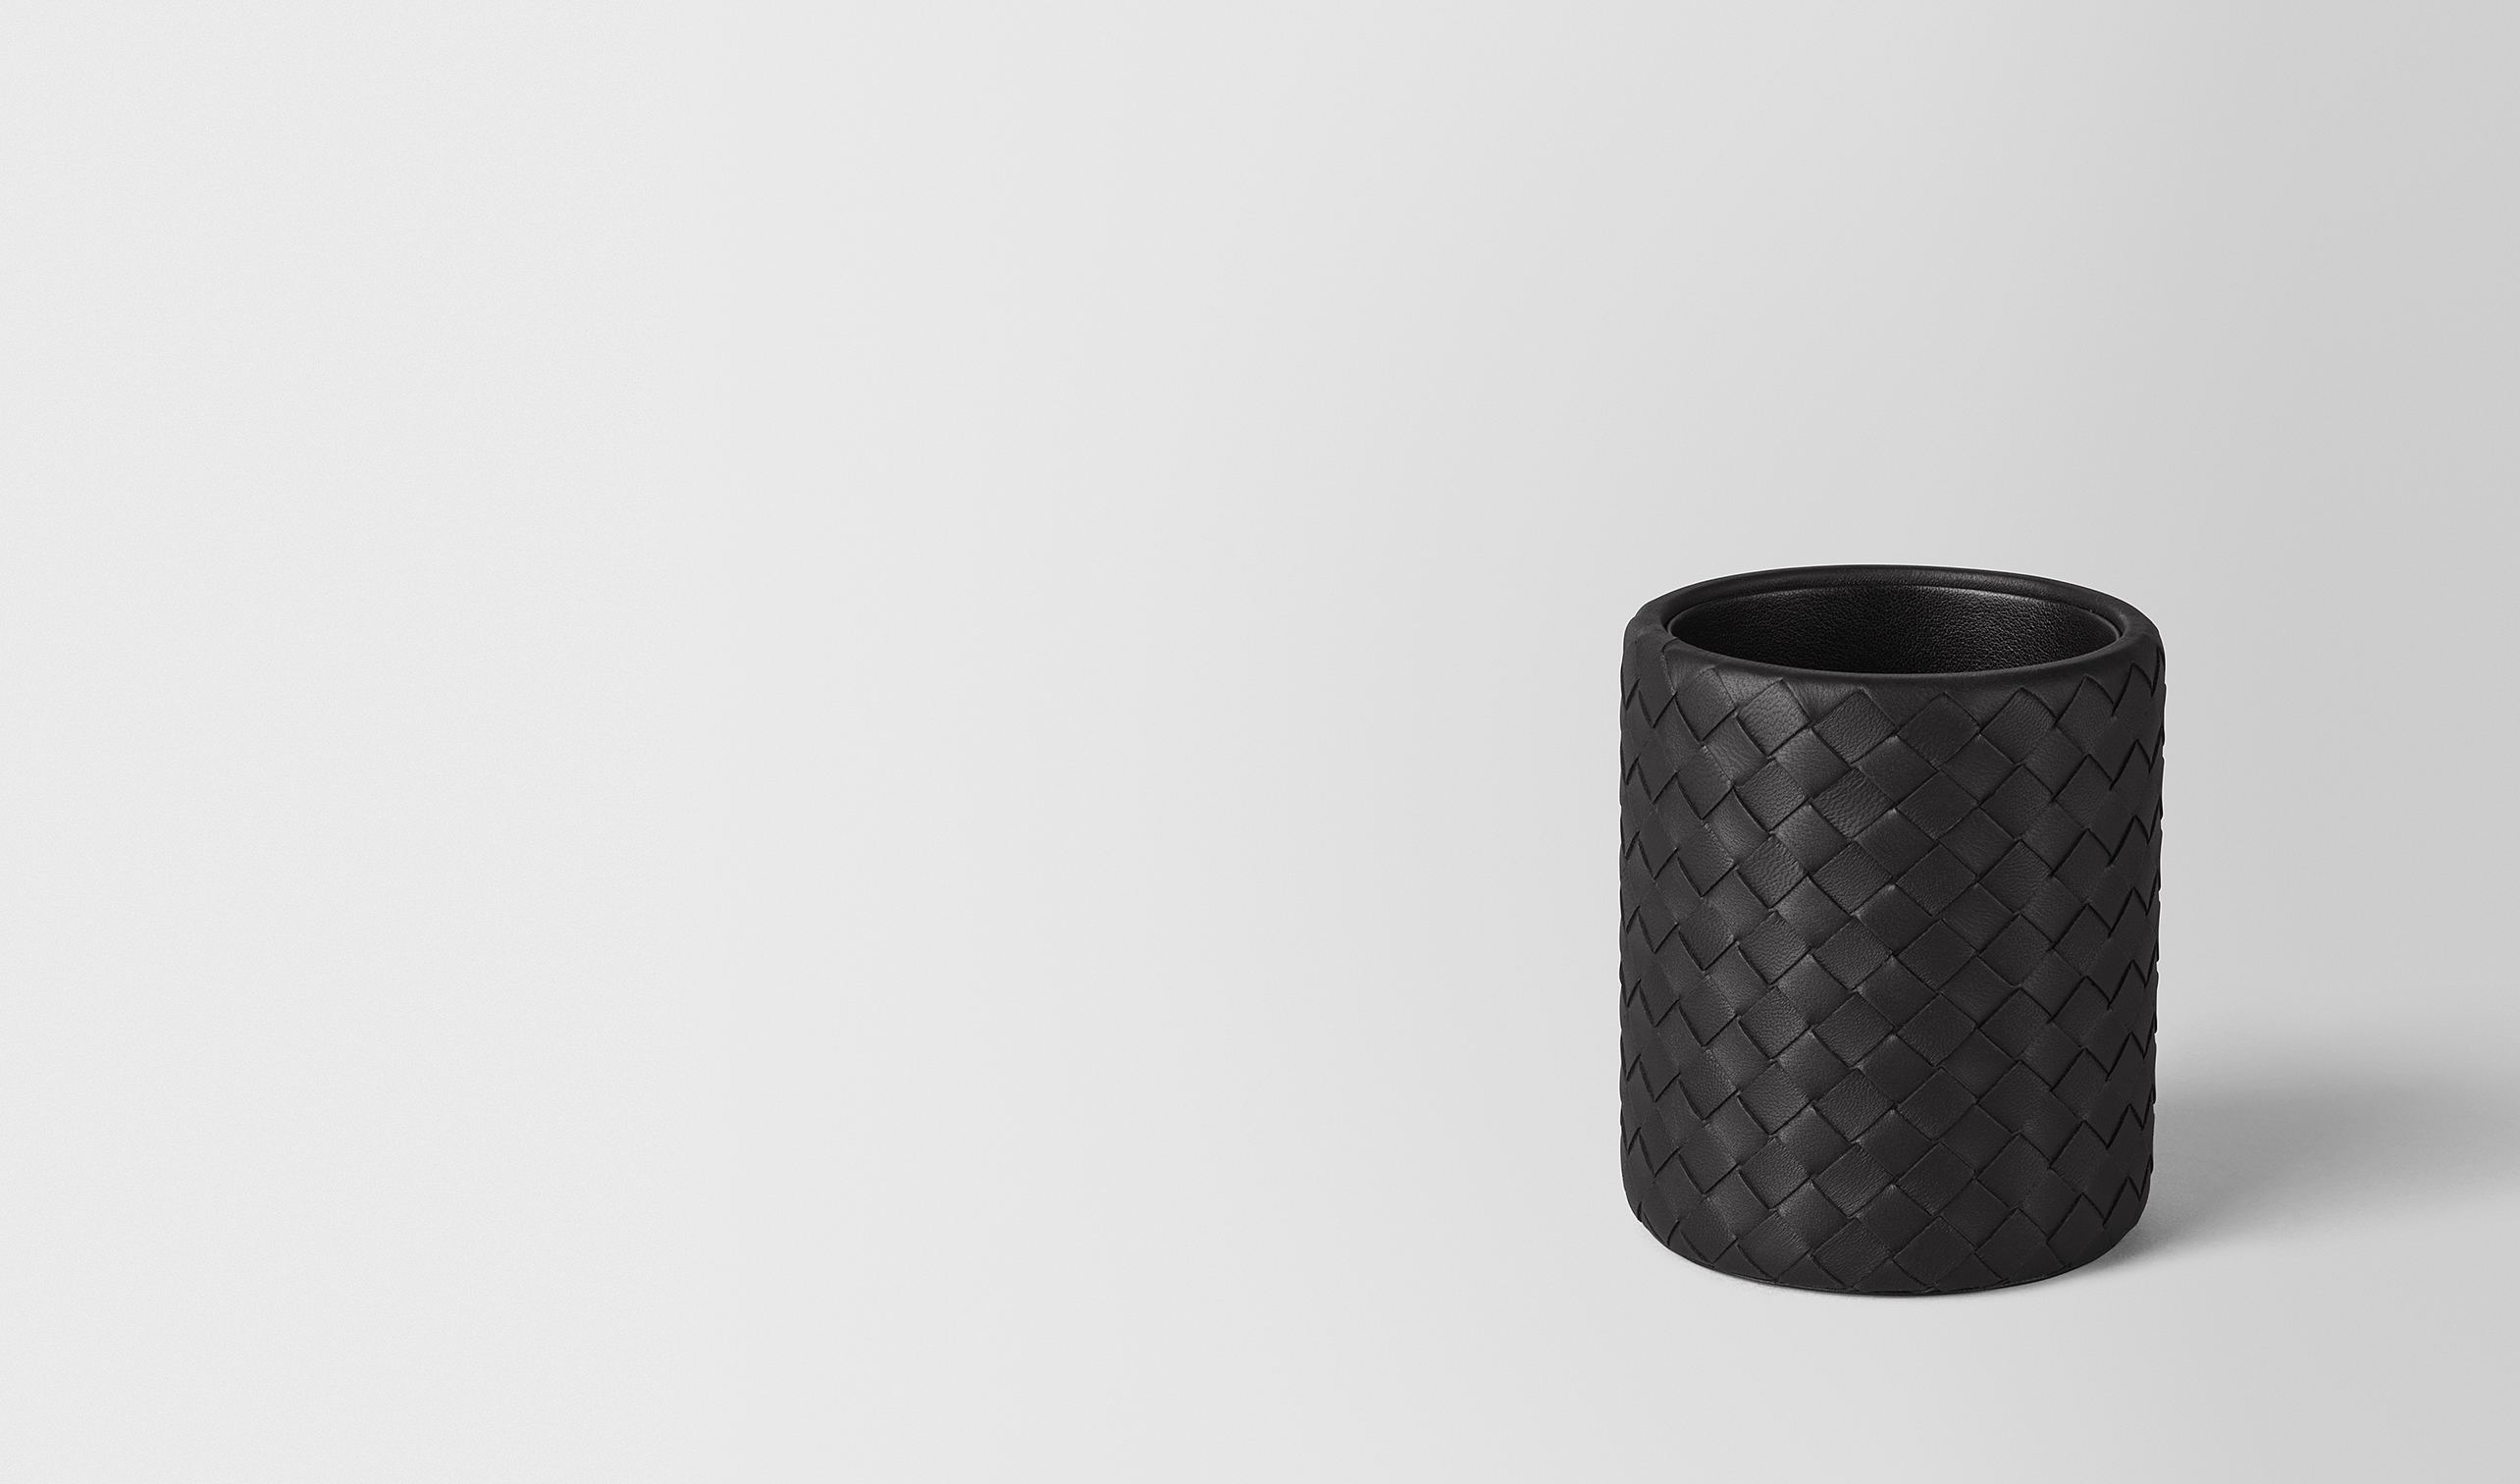 BOTTEGA VENETA Desk accessory E PENCIL HOLDER IN NERO INTRECCIATO NAPPA pl